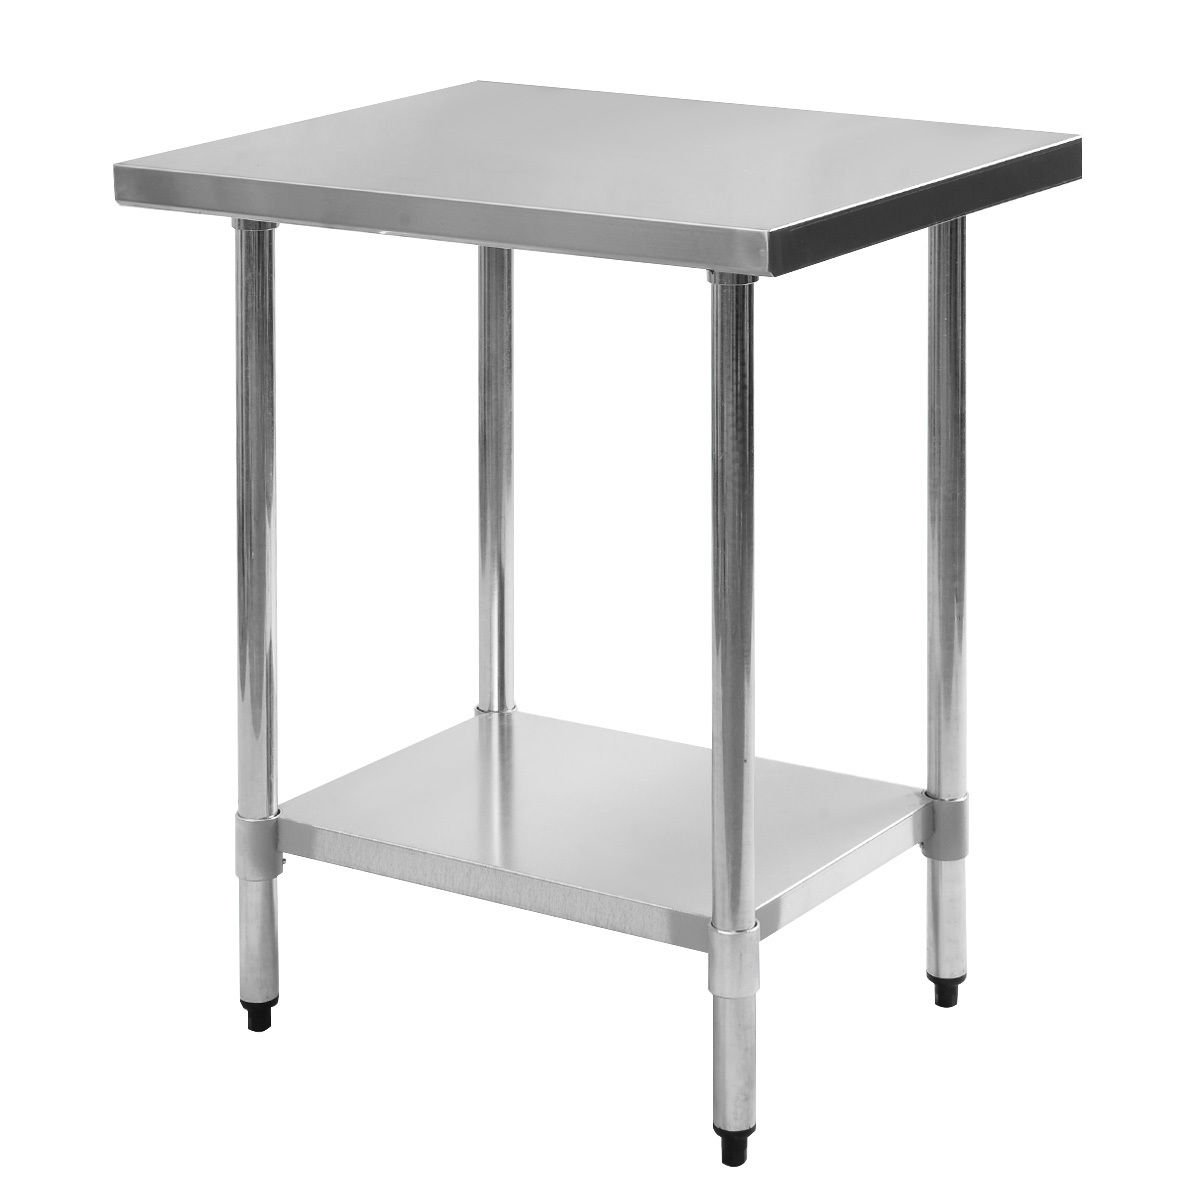 Giantex Stainless Steel Work Prep Table Commercial Kitchen Restaurant (24'' x 30'')